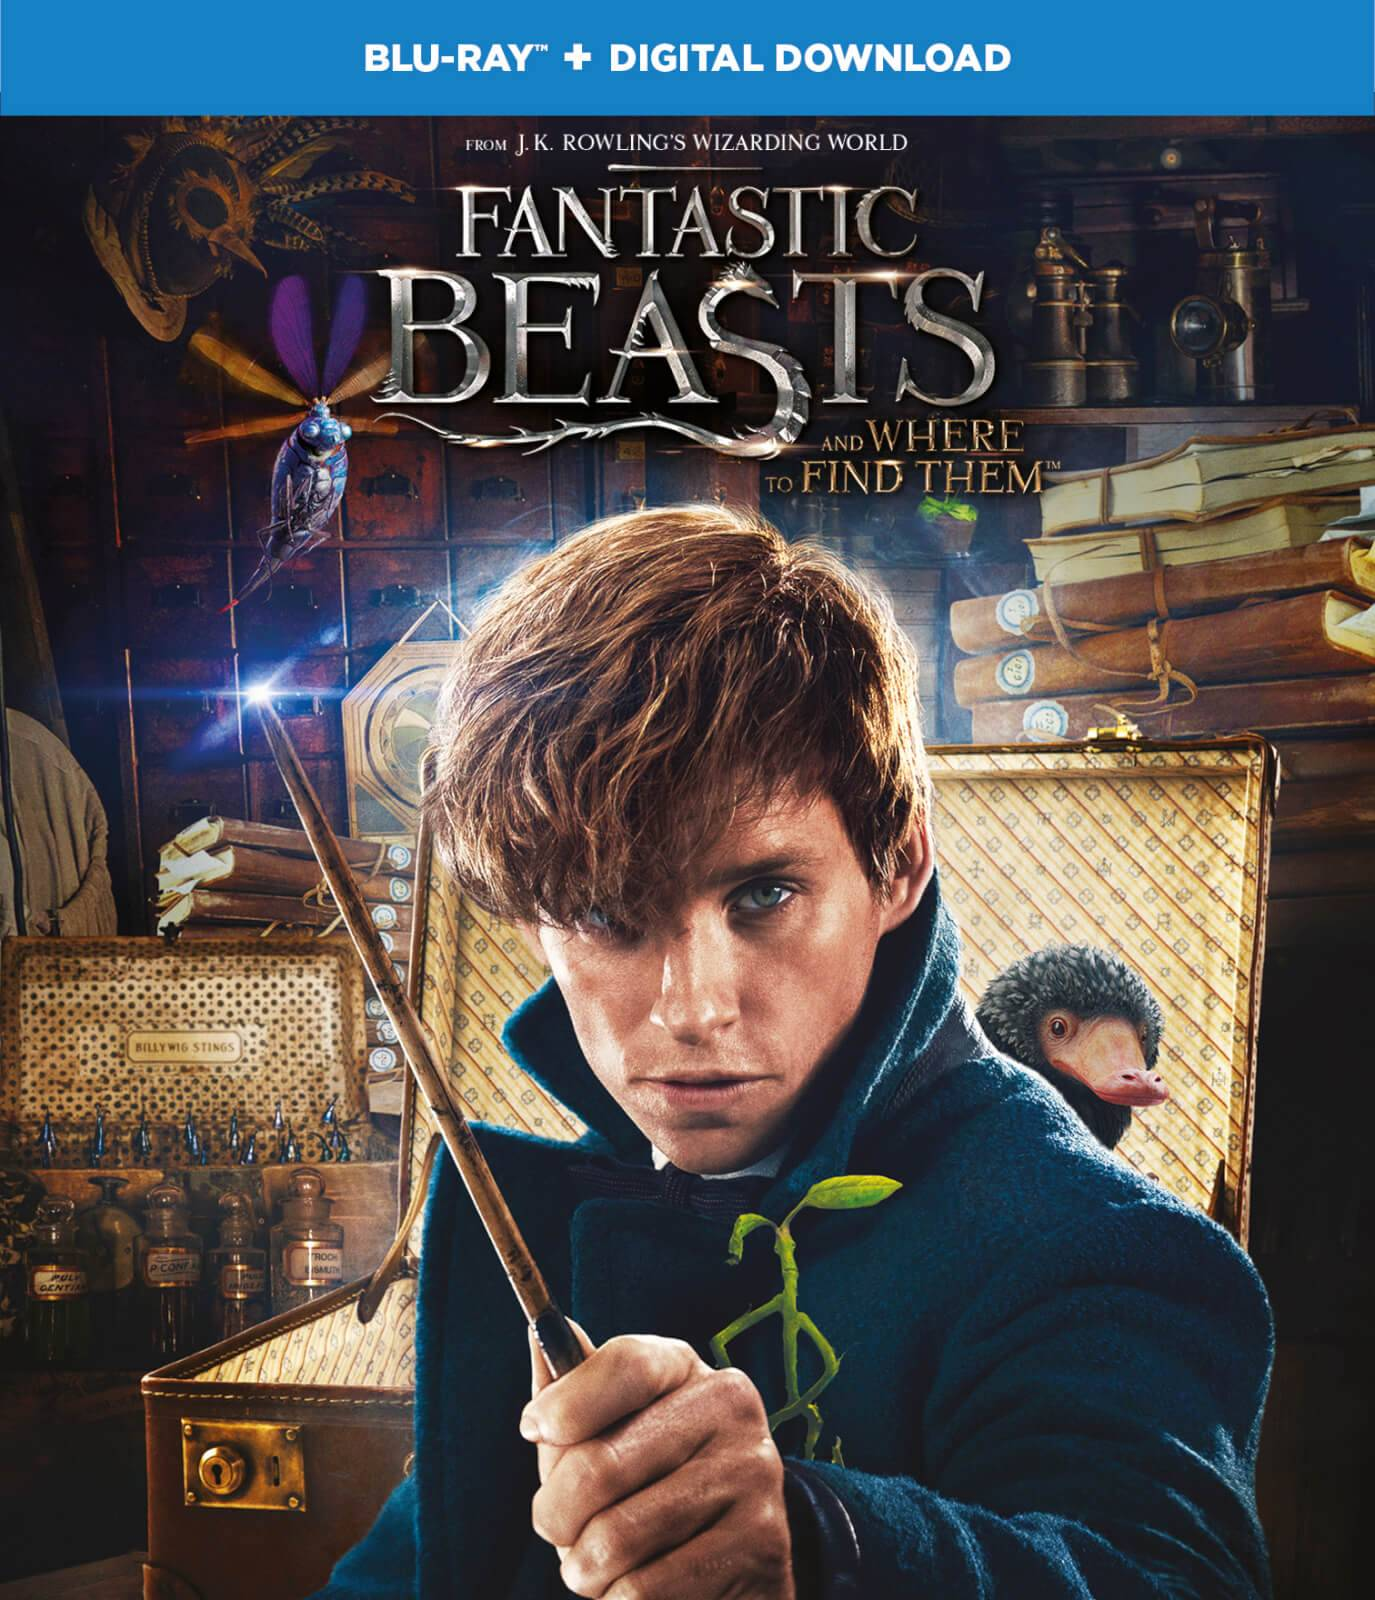 Warner Home Video Fantastic Beasts and Where To Find Them